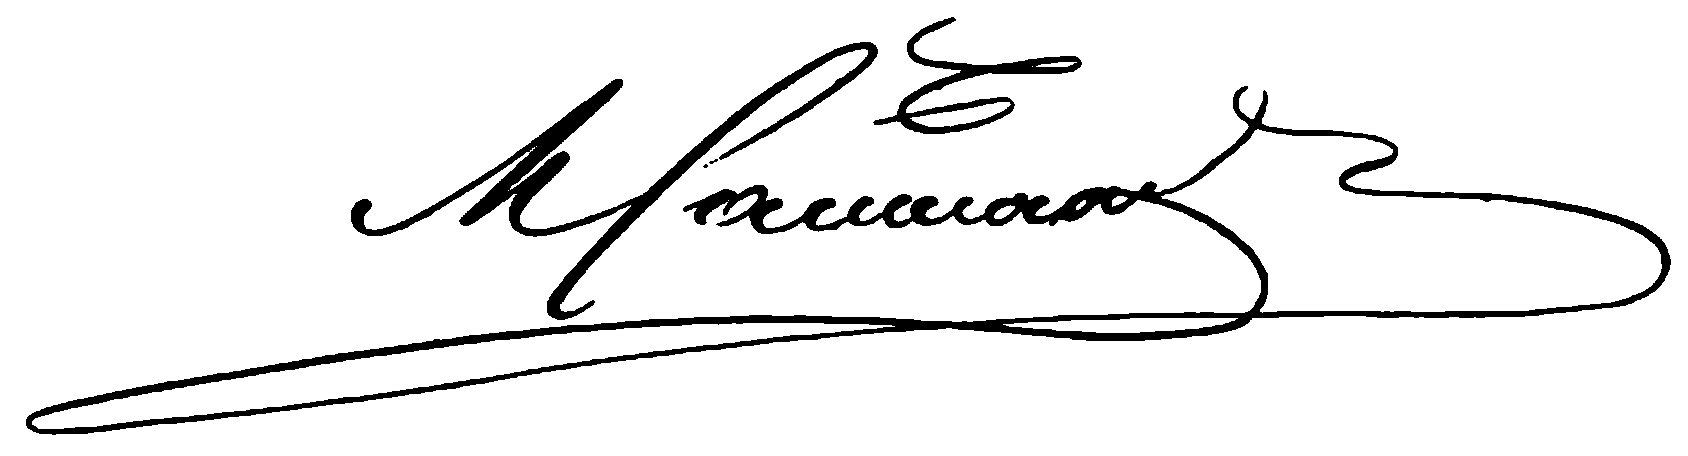 Mikhail Saltykov-Shchedrin Signature.png